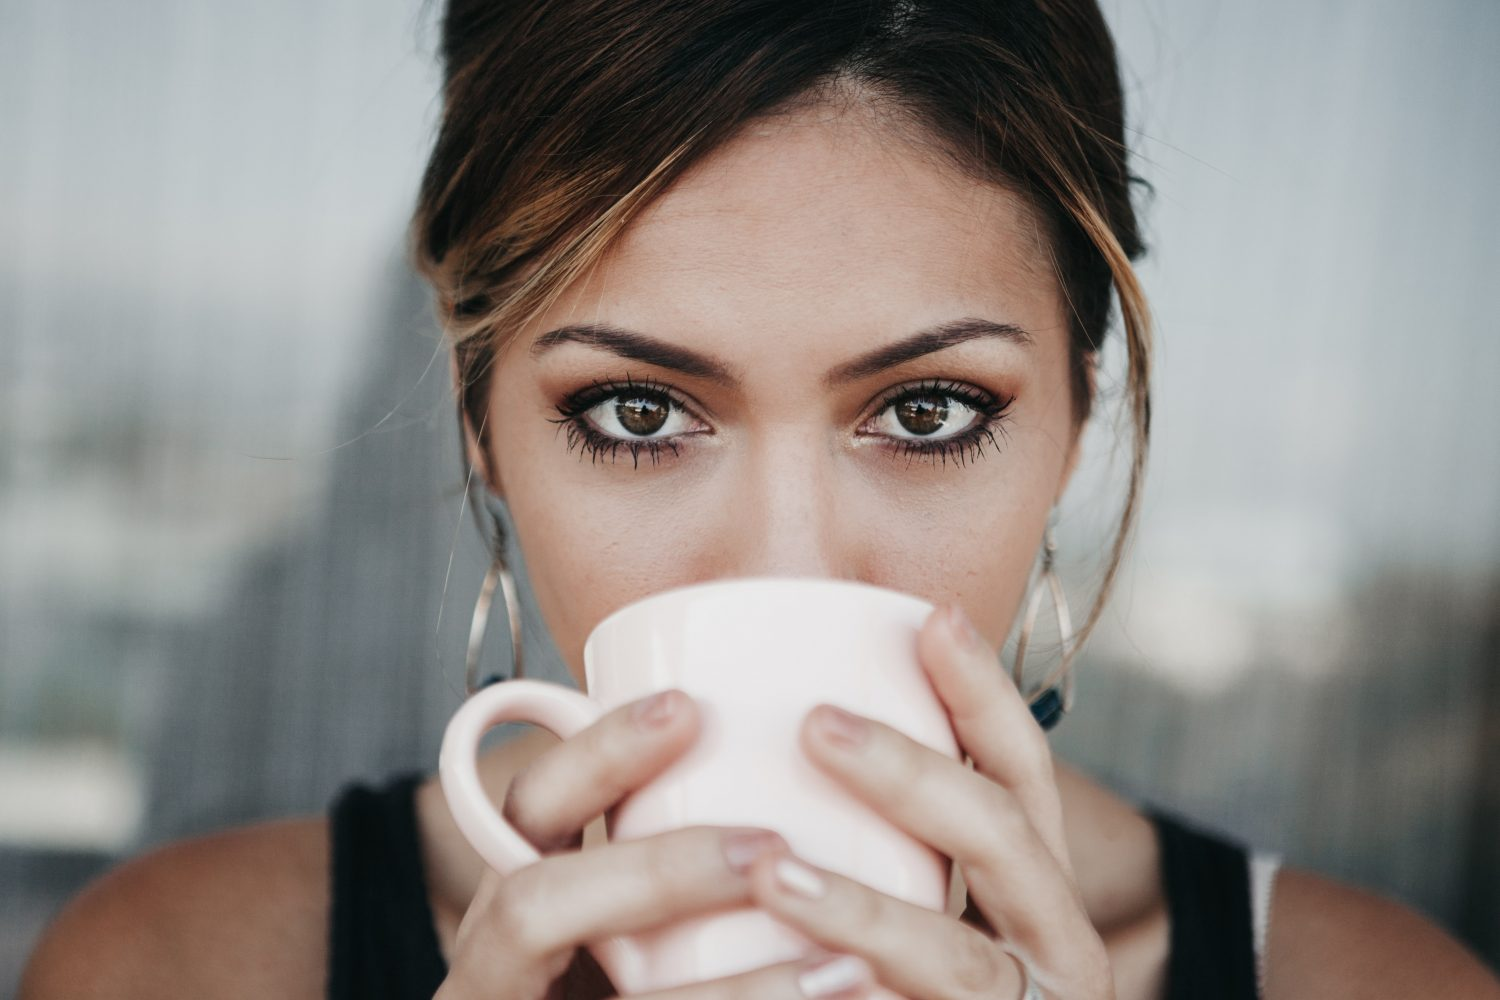 coconut oil in coffee: could it be a good idea and why?